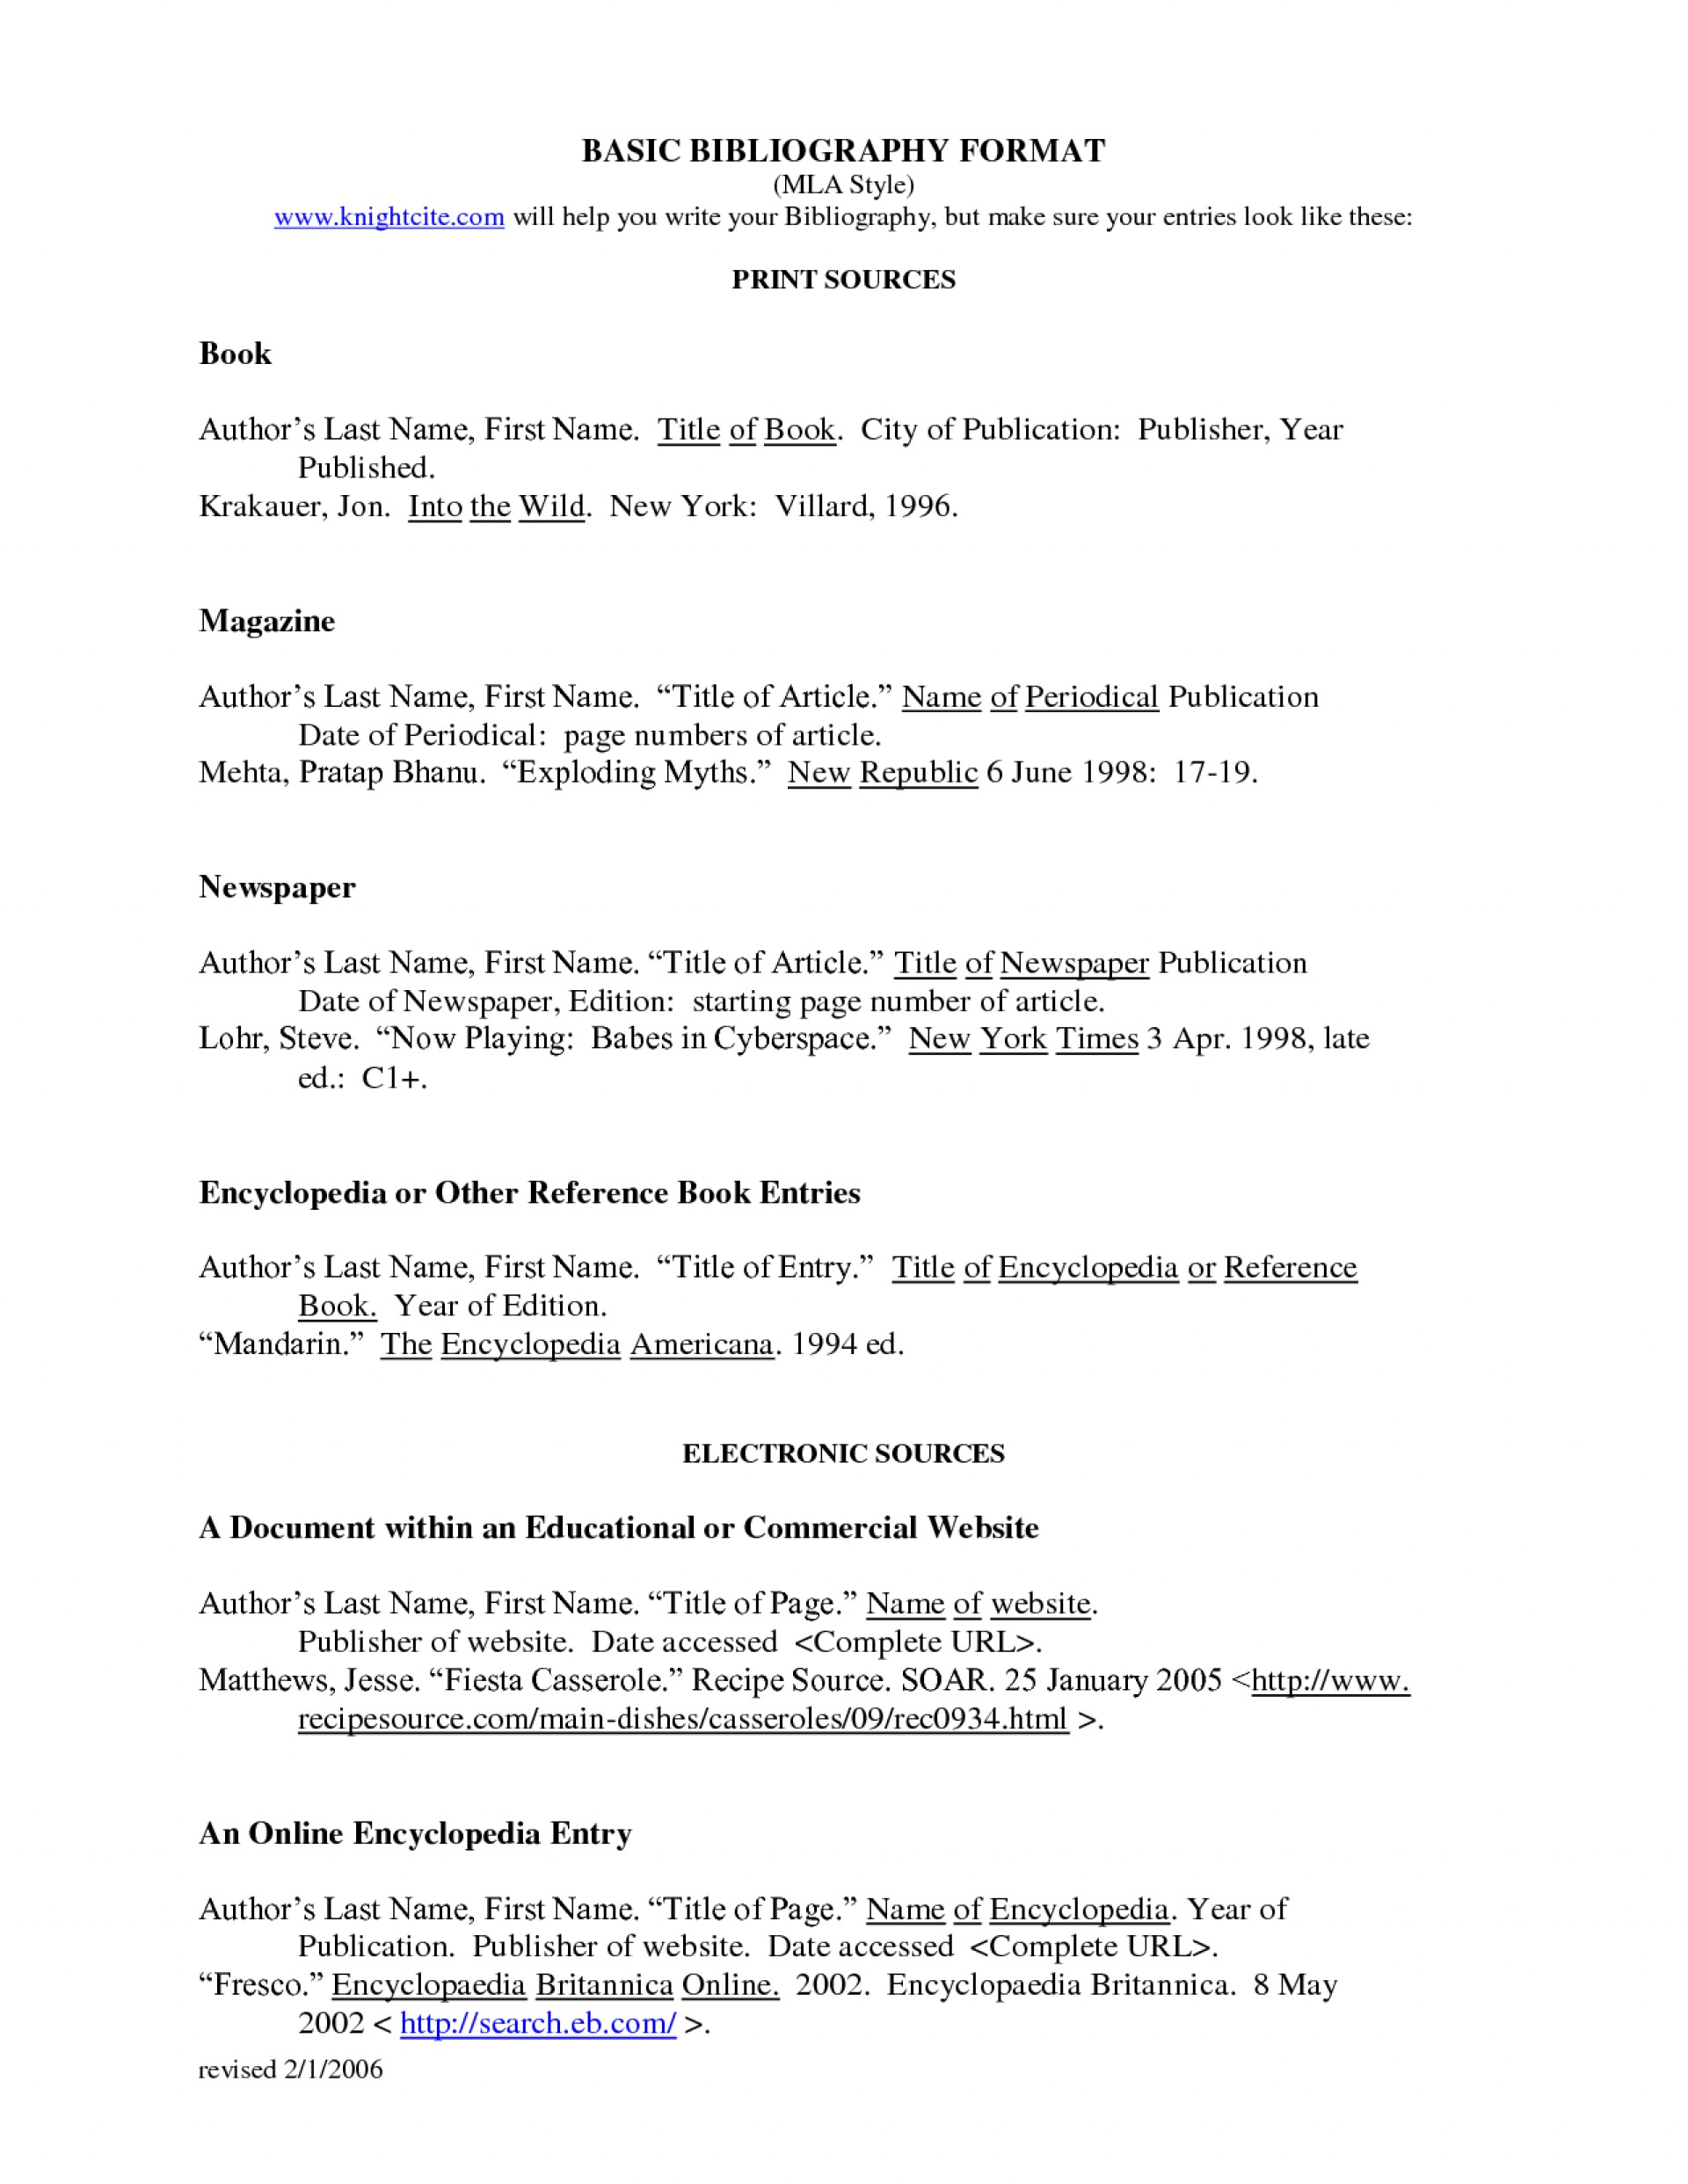 001 Research Paper Work Cited Page Excellent For Bibliography Citation 1920